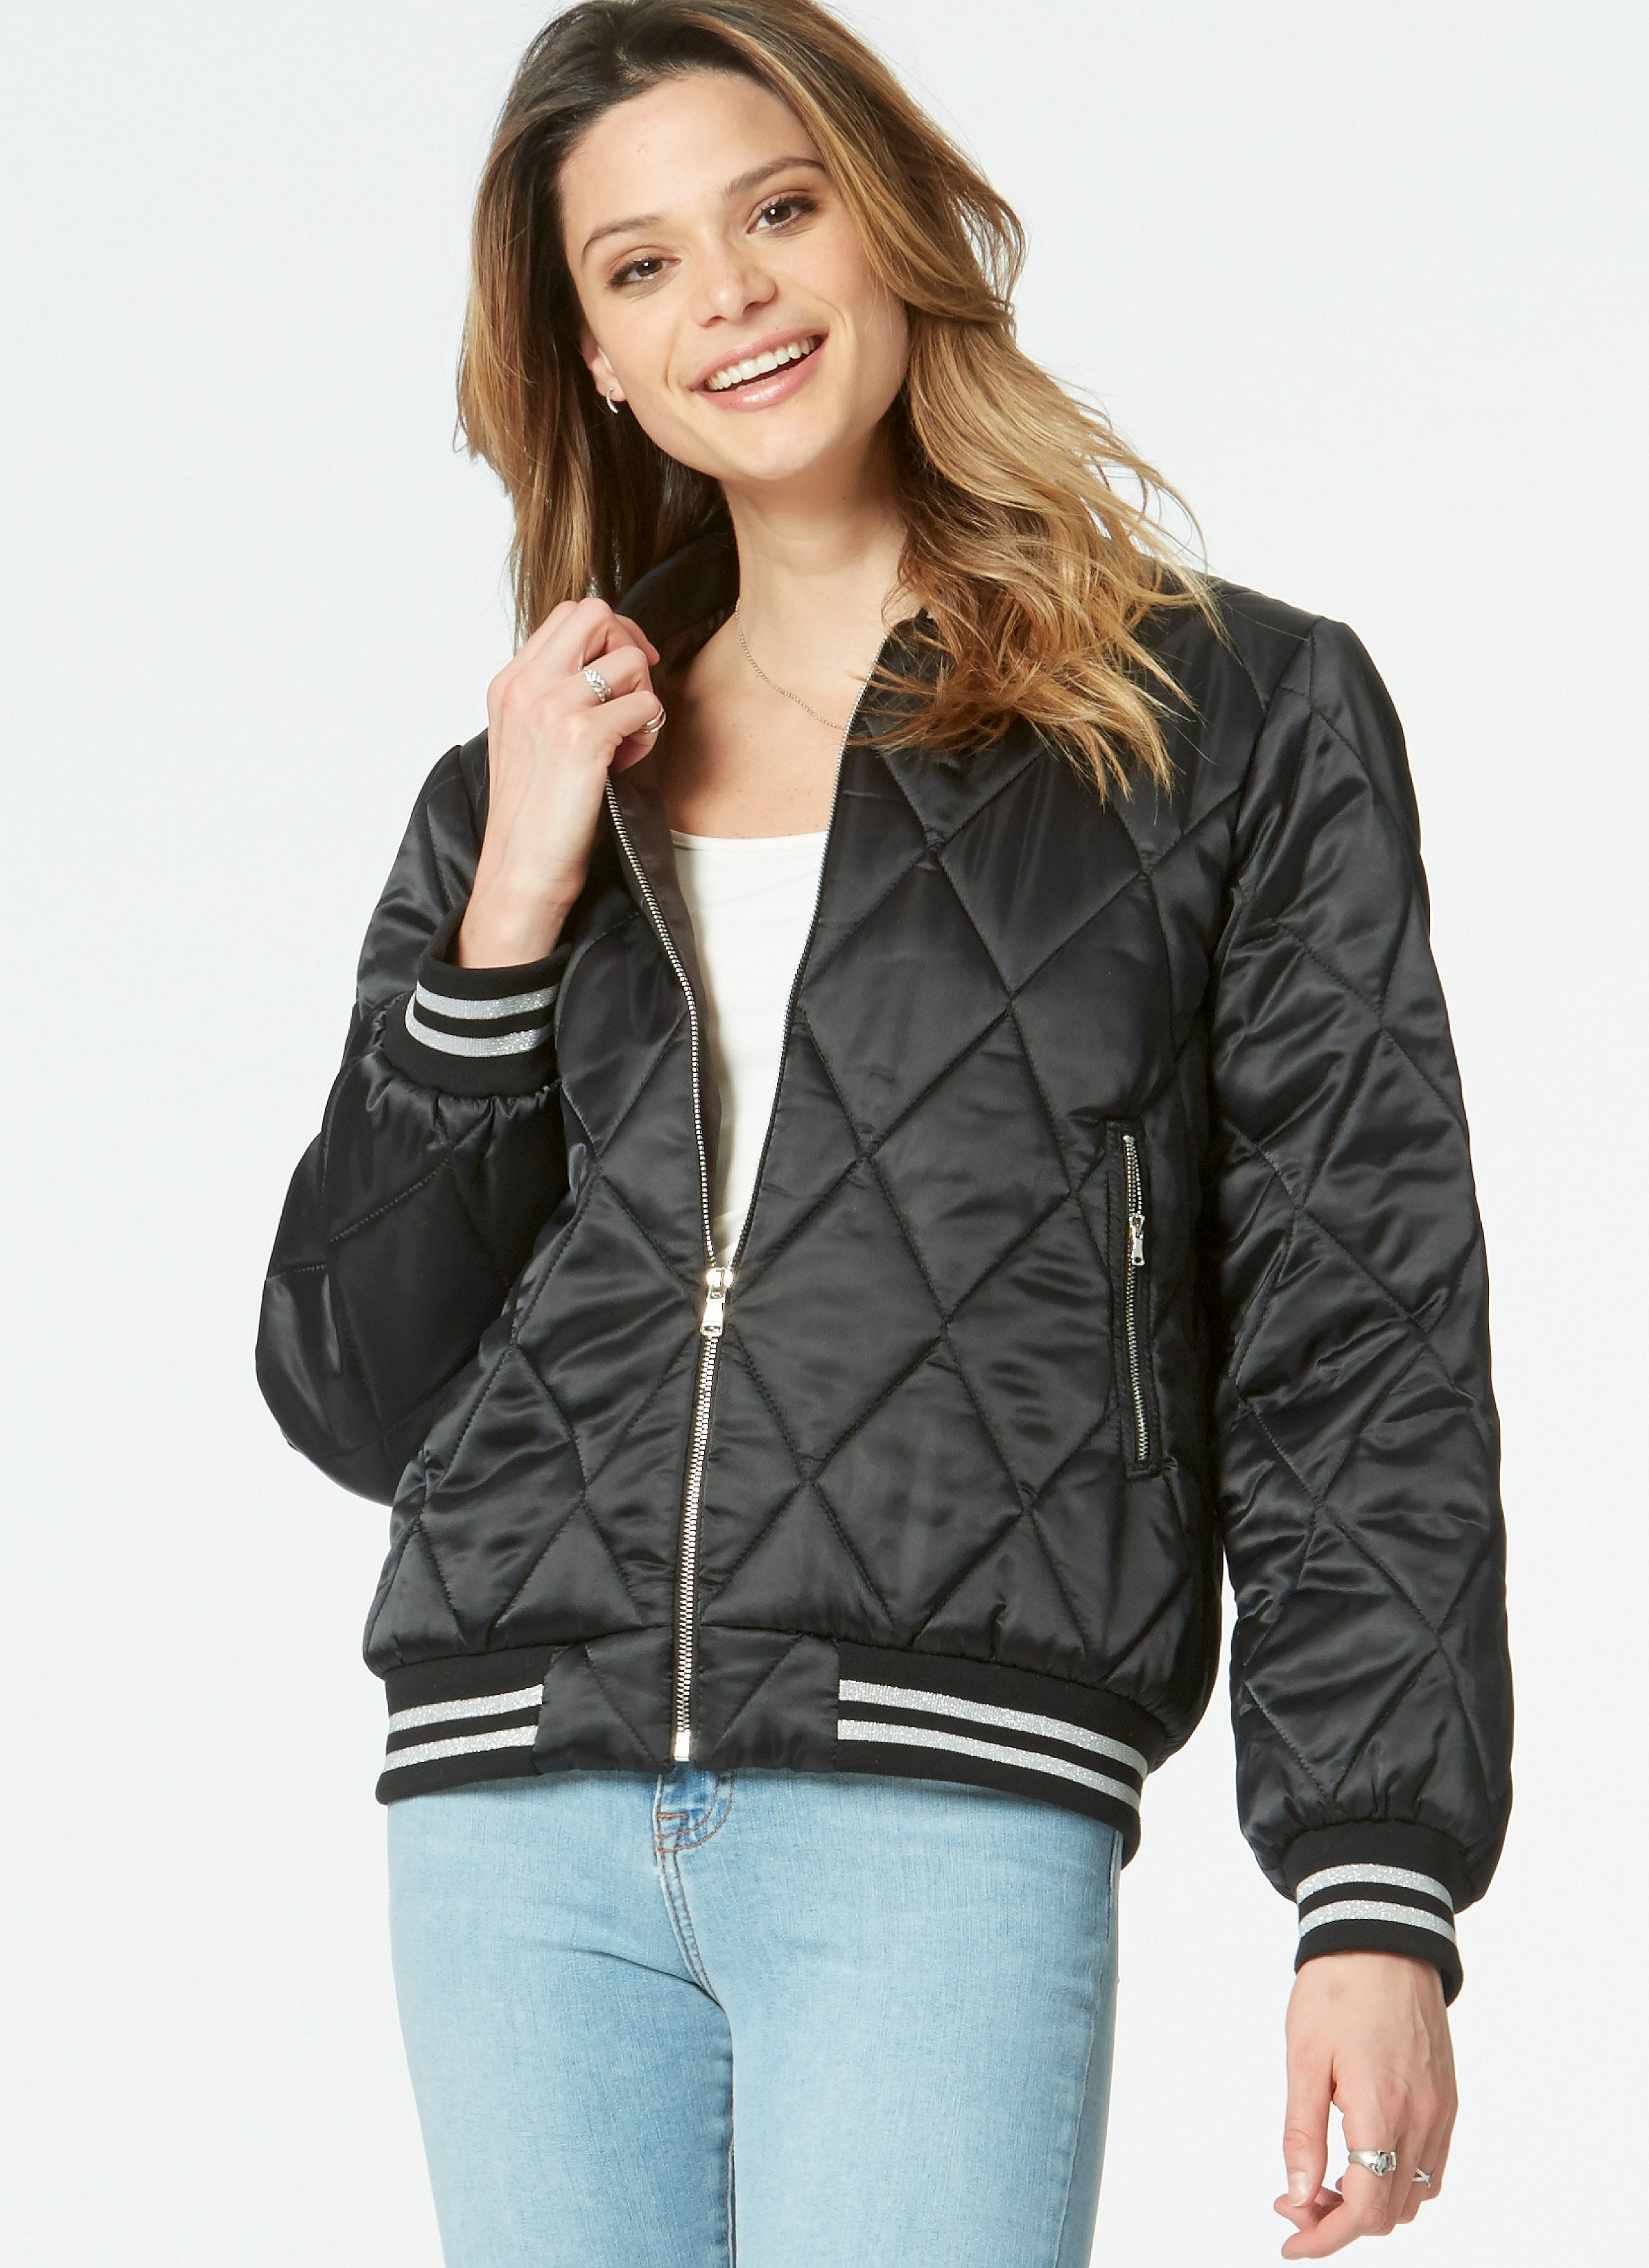 M7637 Misses' and Men's Bomber Jackets